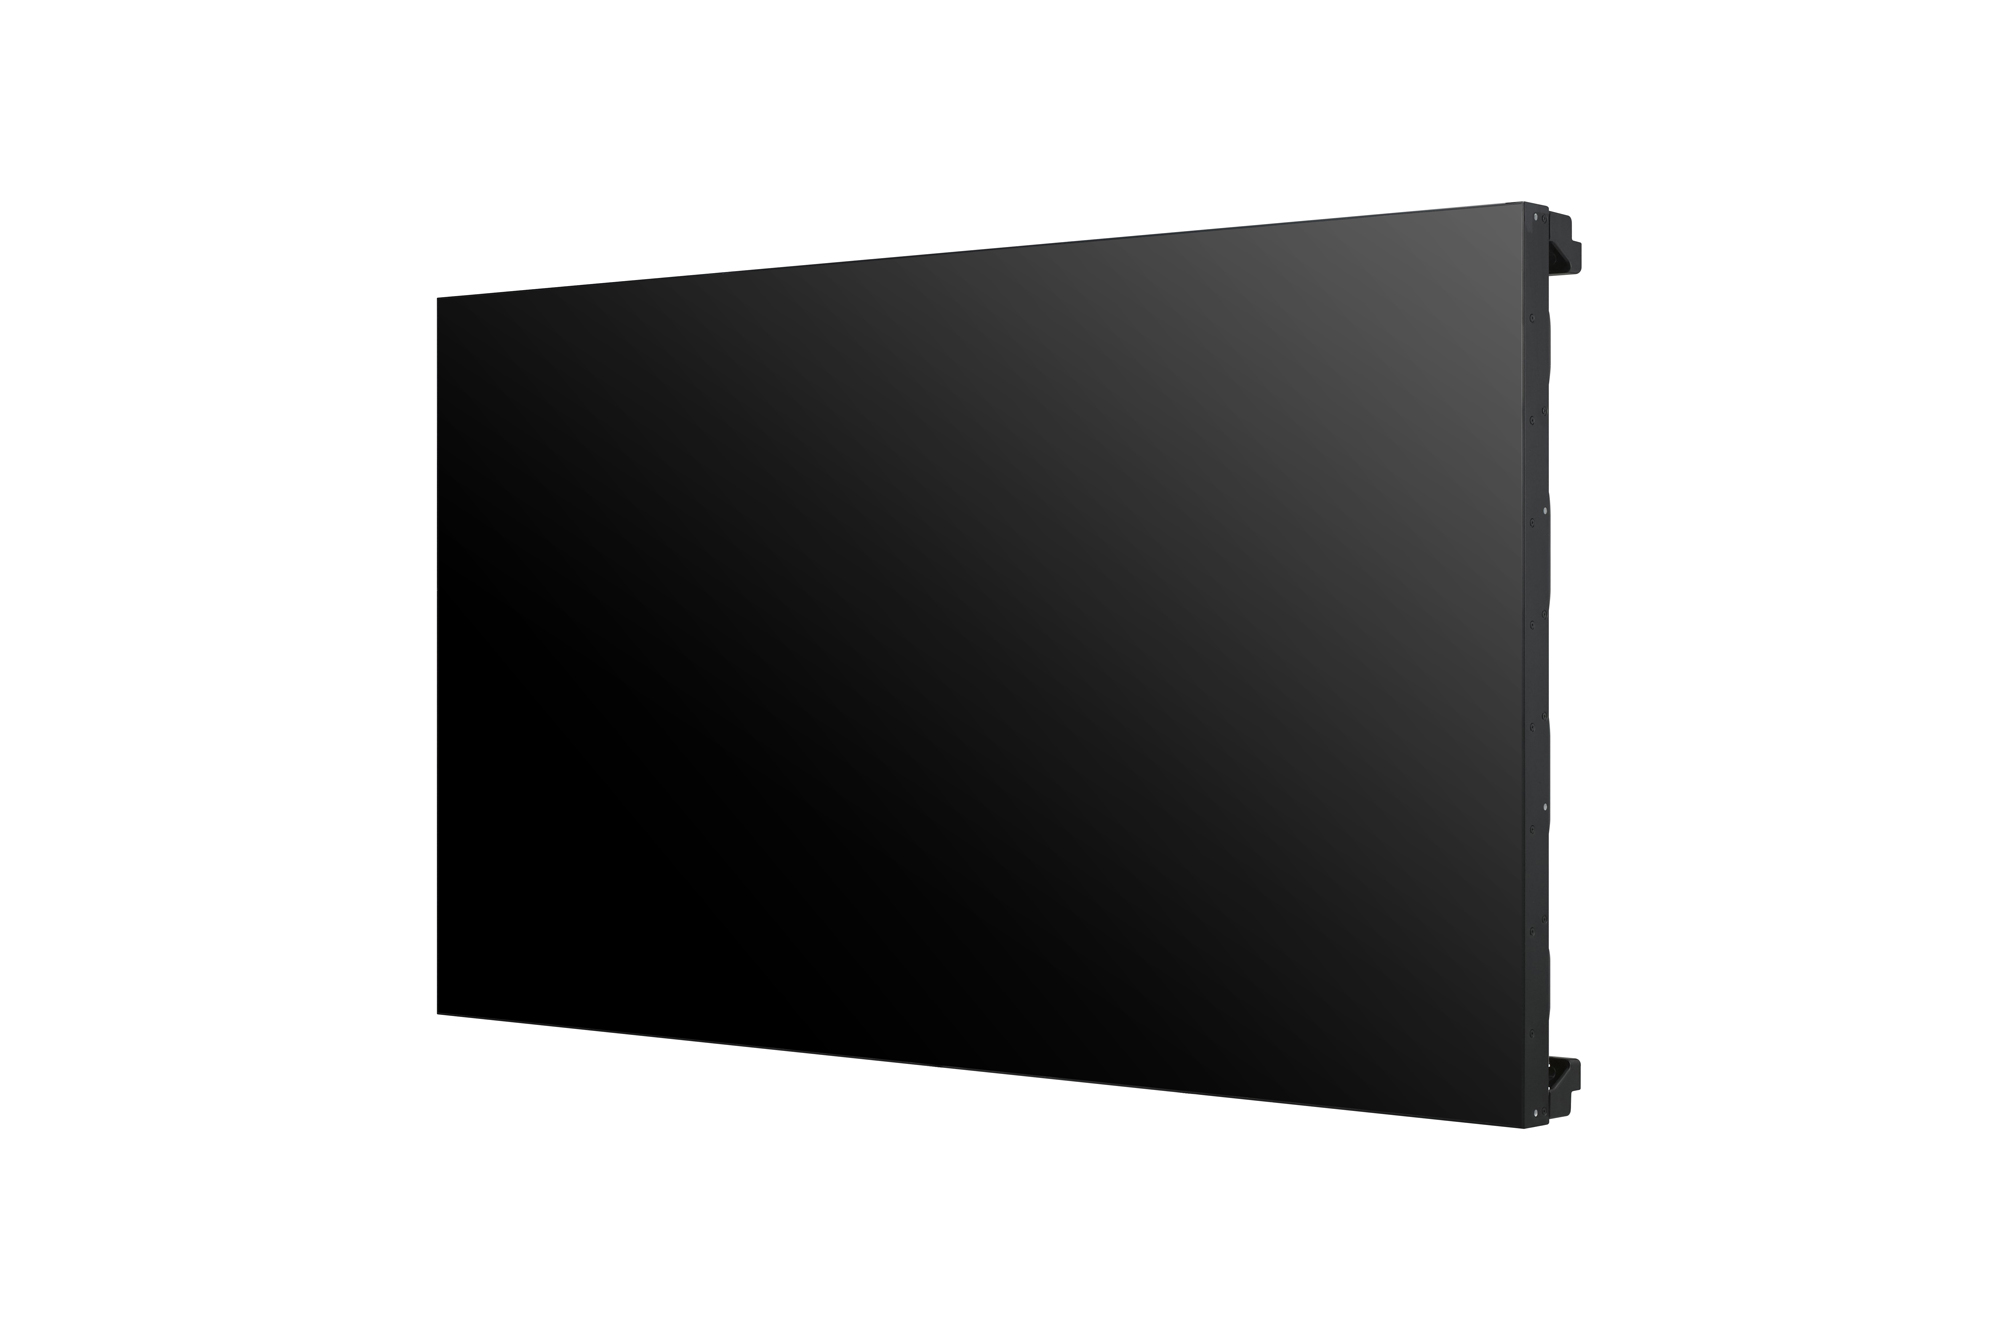 LG Video Wall 55VL7F-A 6